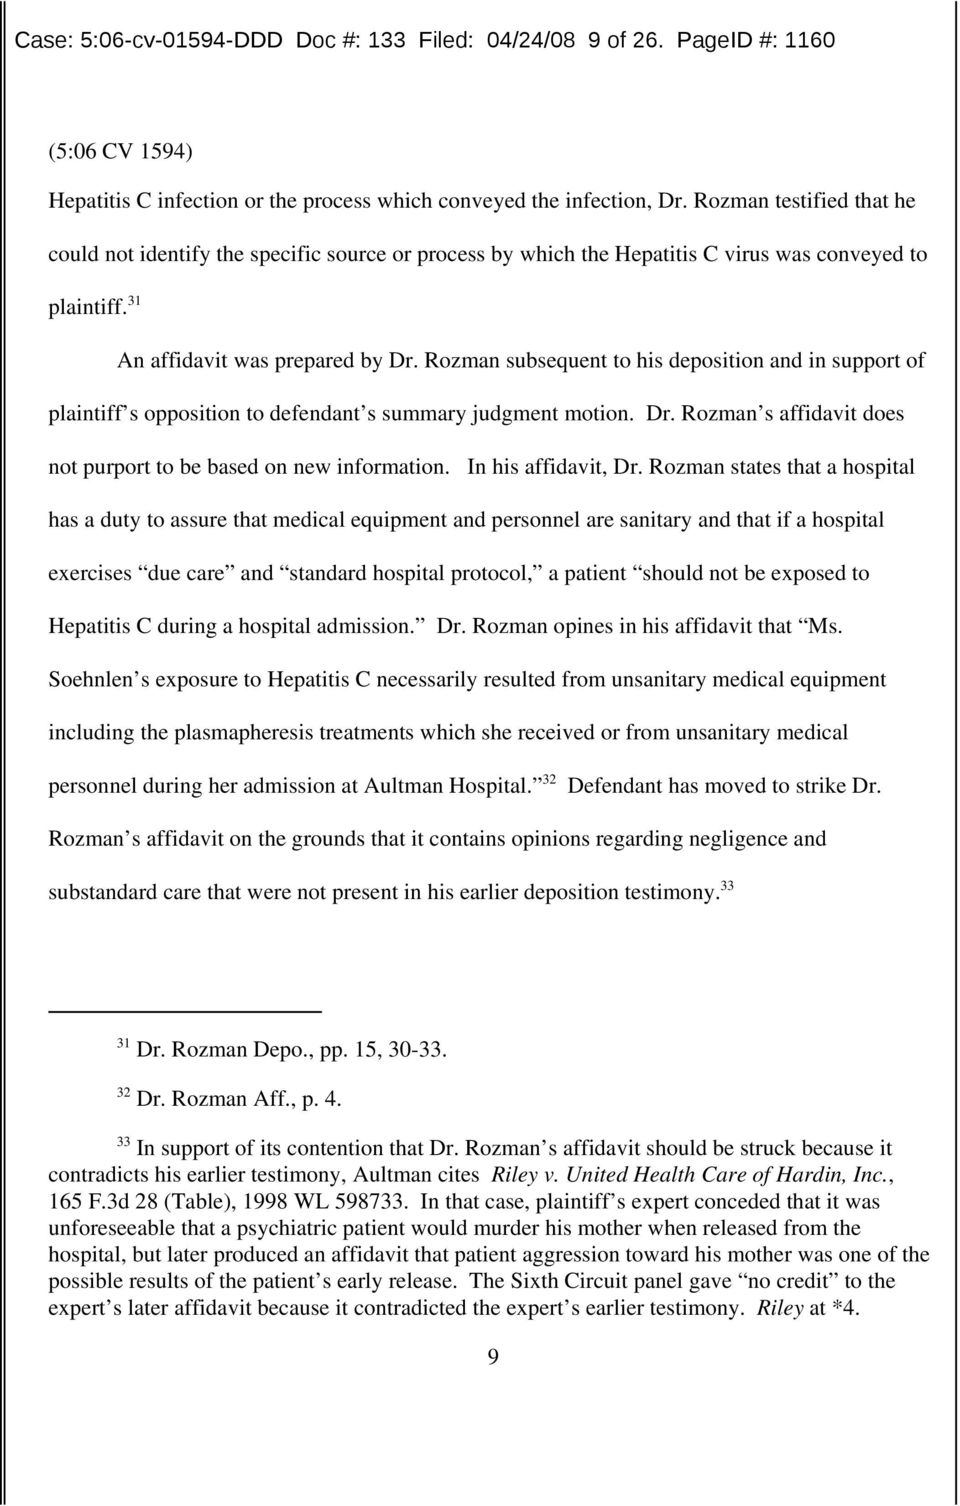 Rozman subsequent to his deposition and in support of plaintiff s opposition to defendant s summary judgment motion. Dr. Rozman s affidavit does not purport to be based on new information.